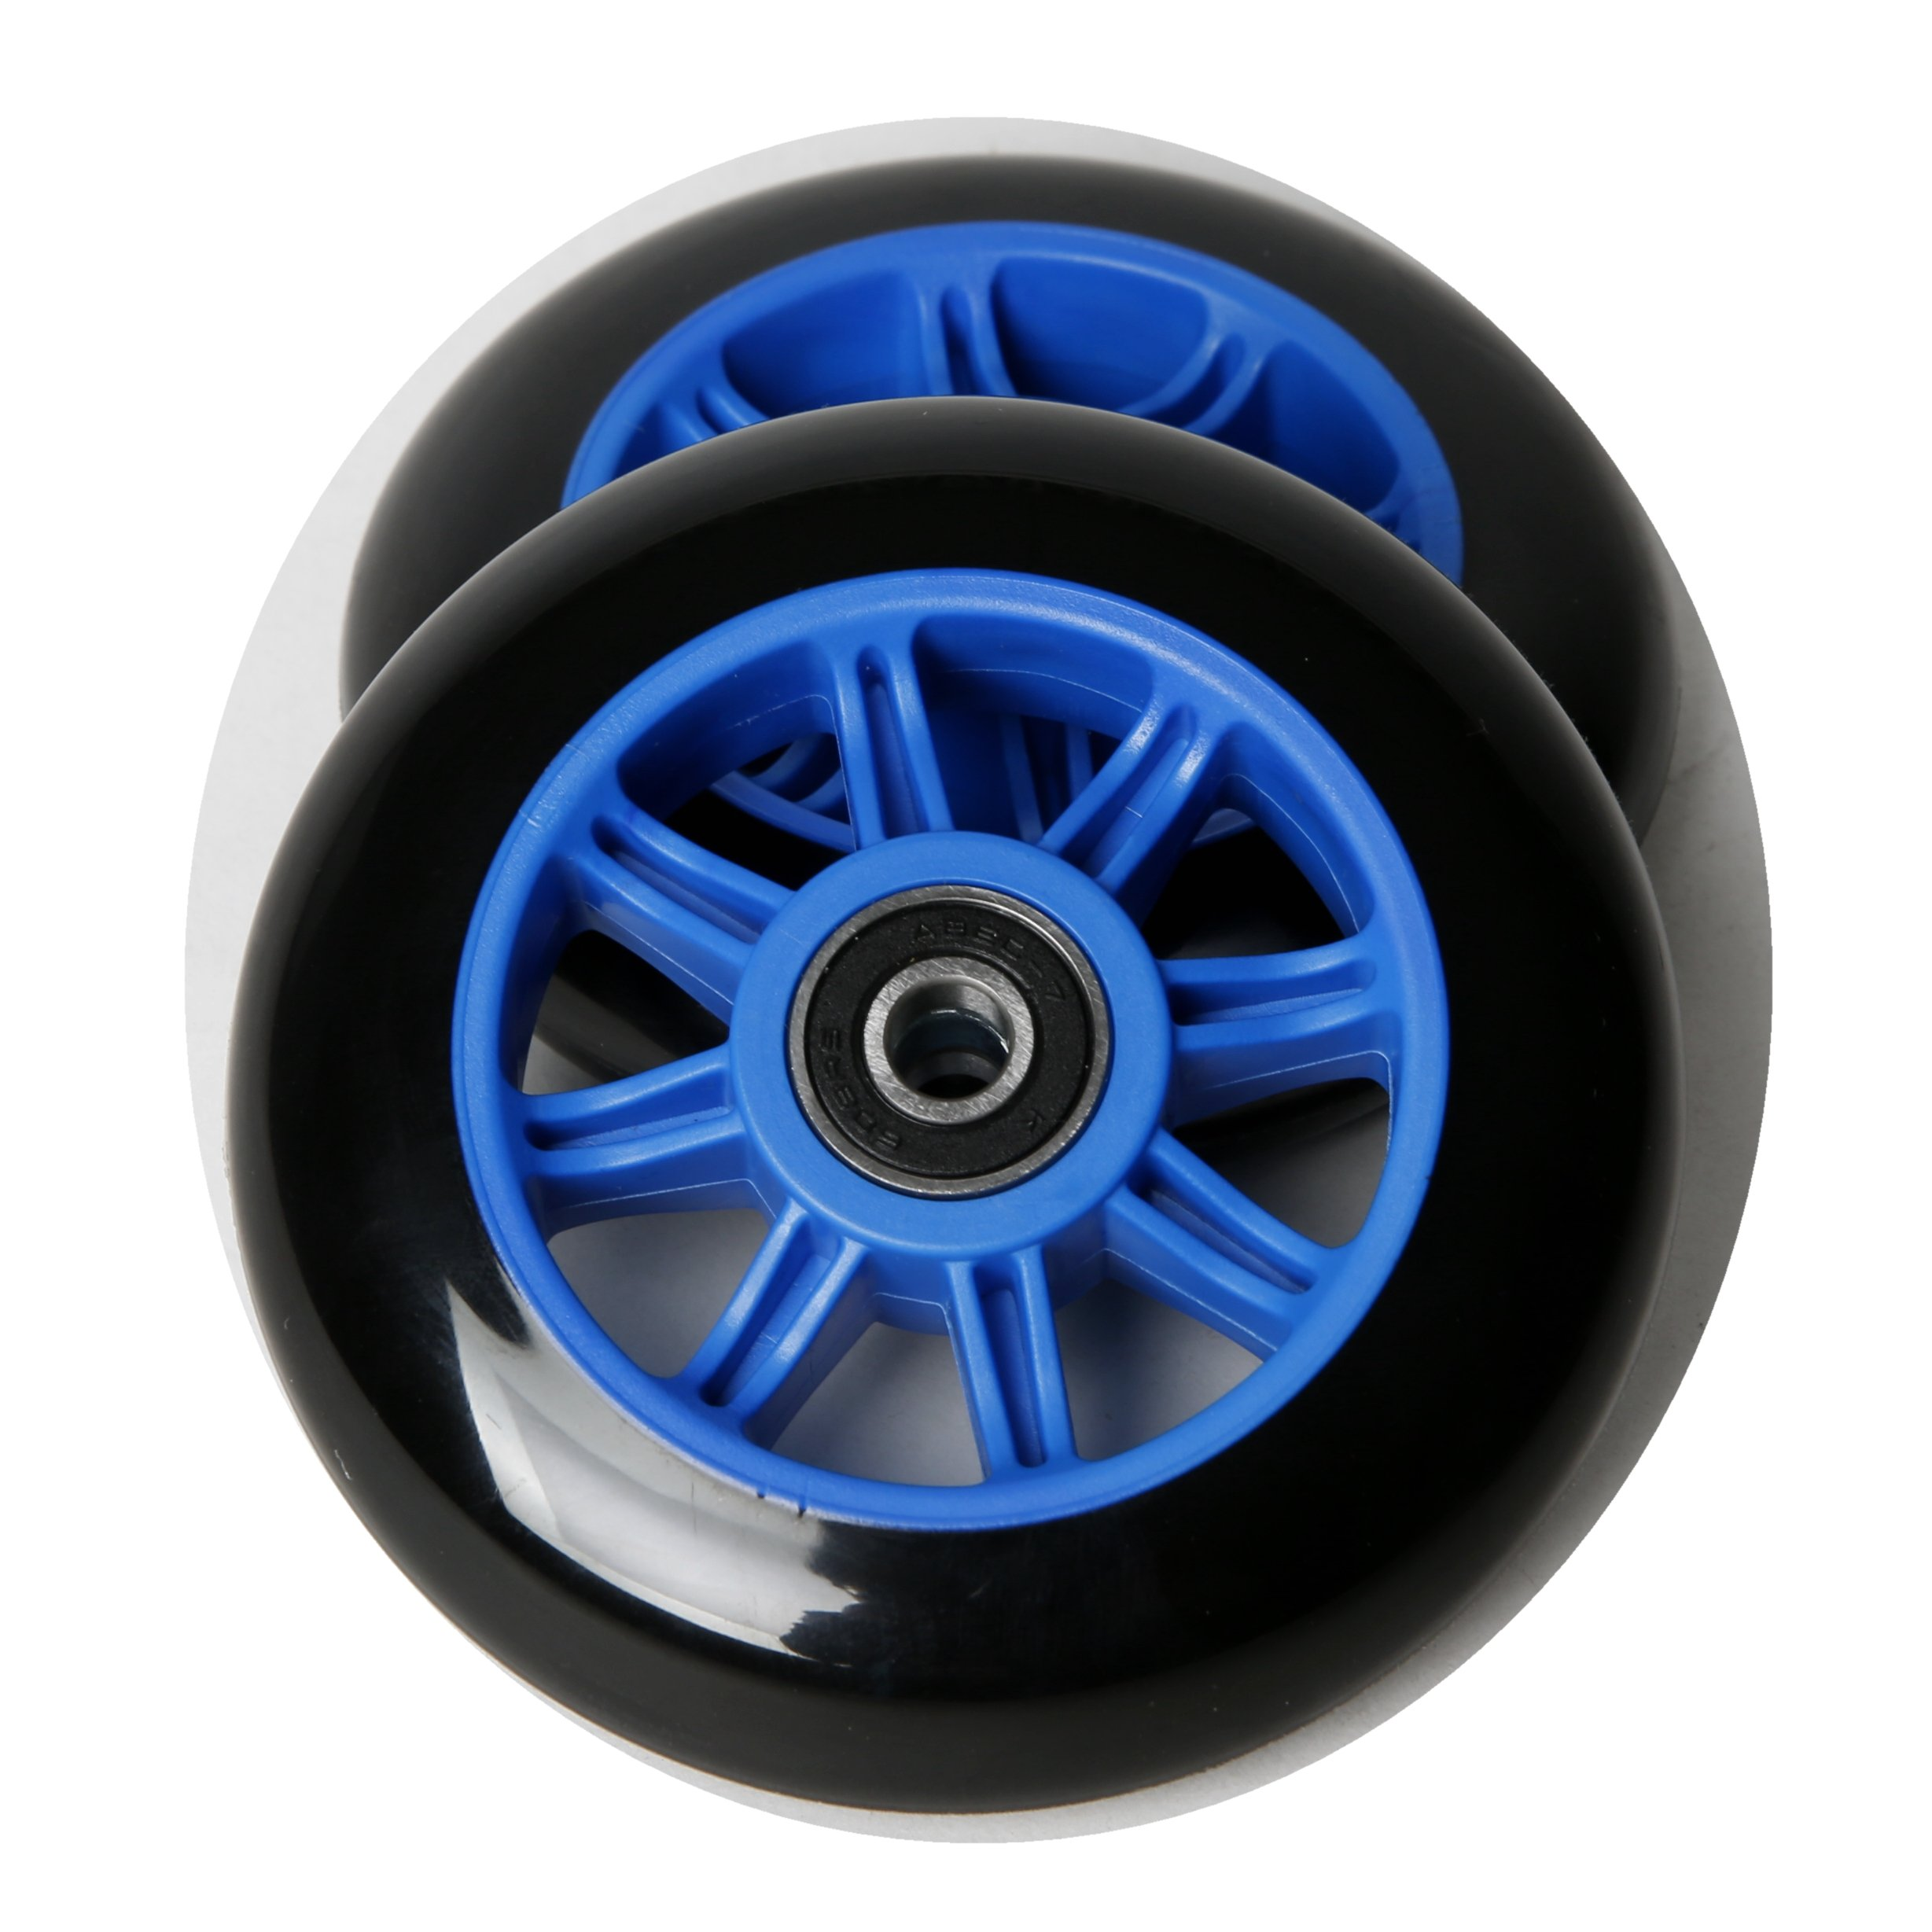 FREEDARE Scooter Wheels for Kick Scooter Replacement Wheels with Bearings(Pack of 2,Blue)